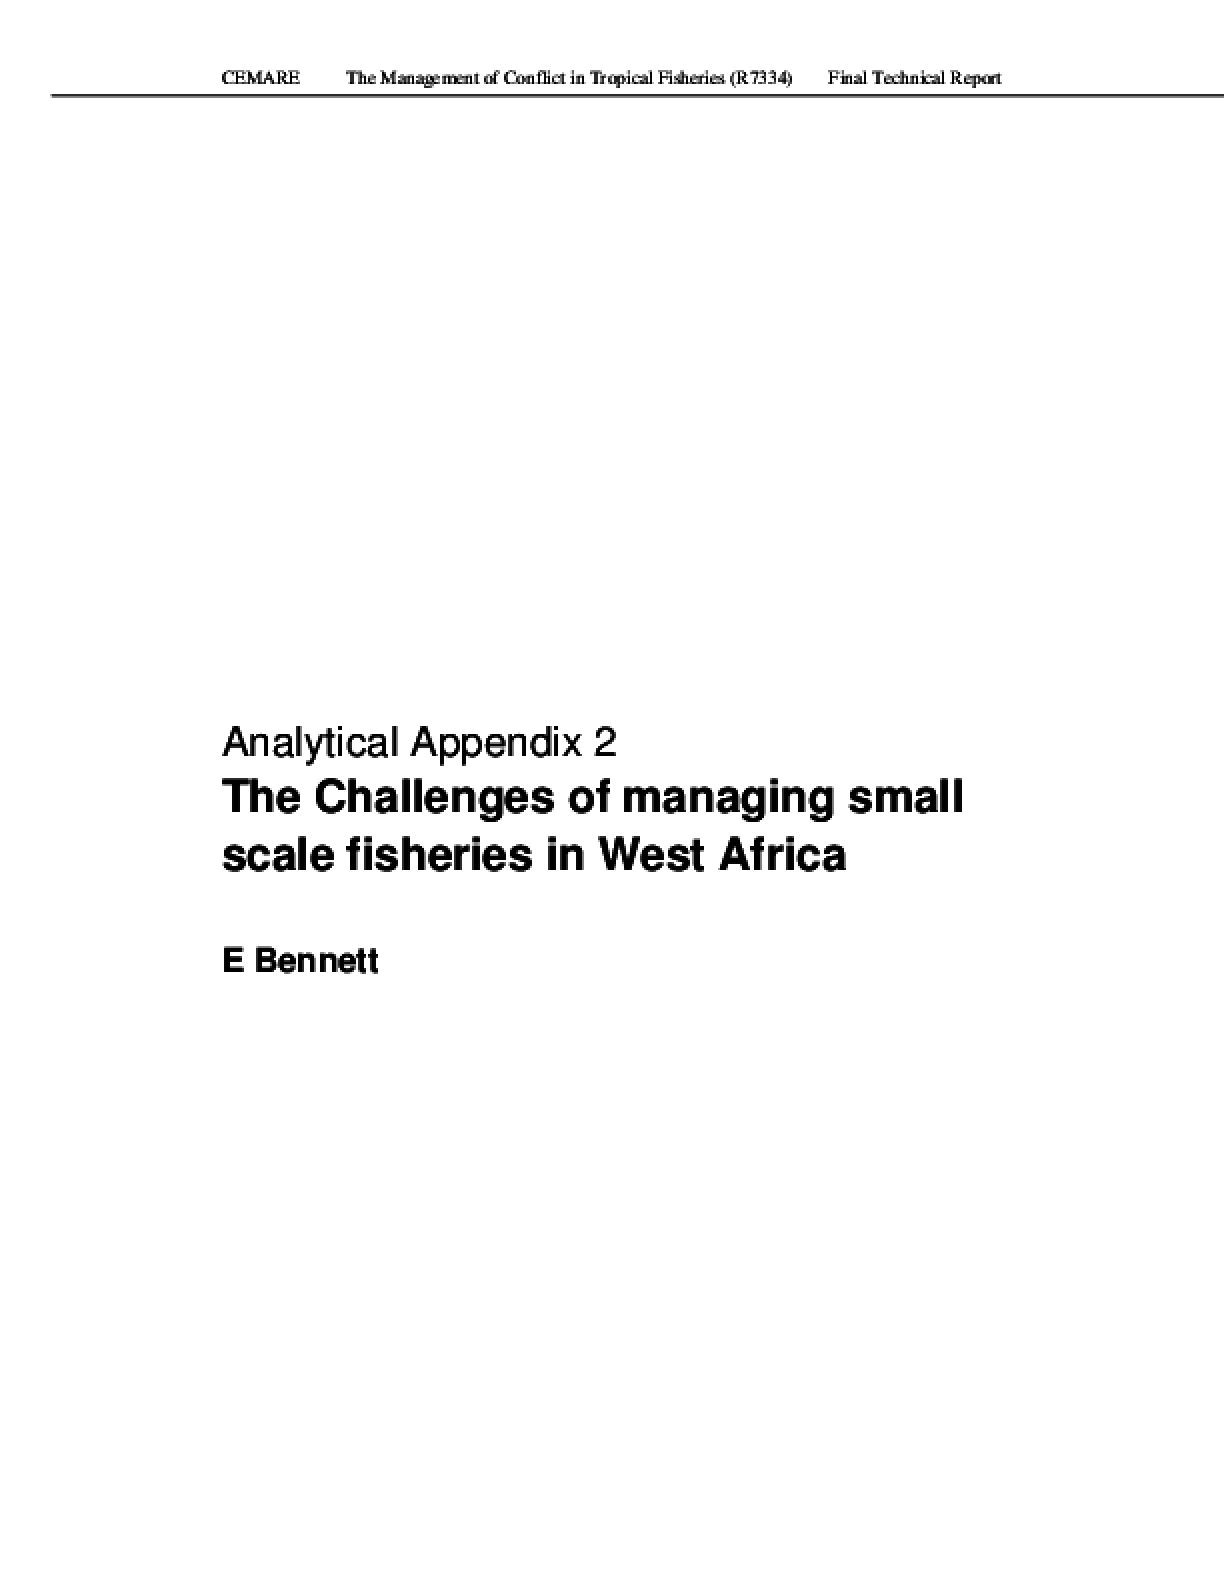 Analytical Appendix 2: The Challenges of Managing Small Scale Fisheries in West Africa